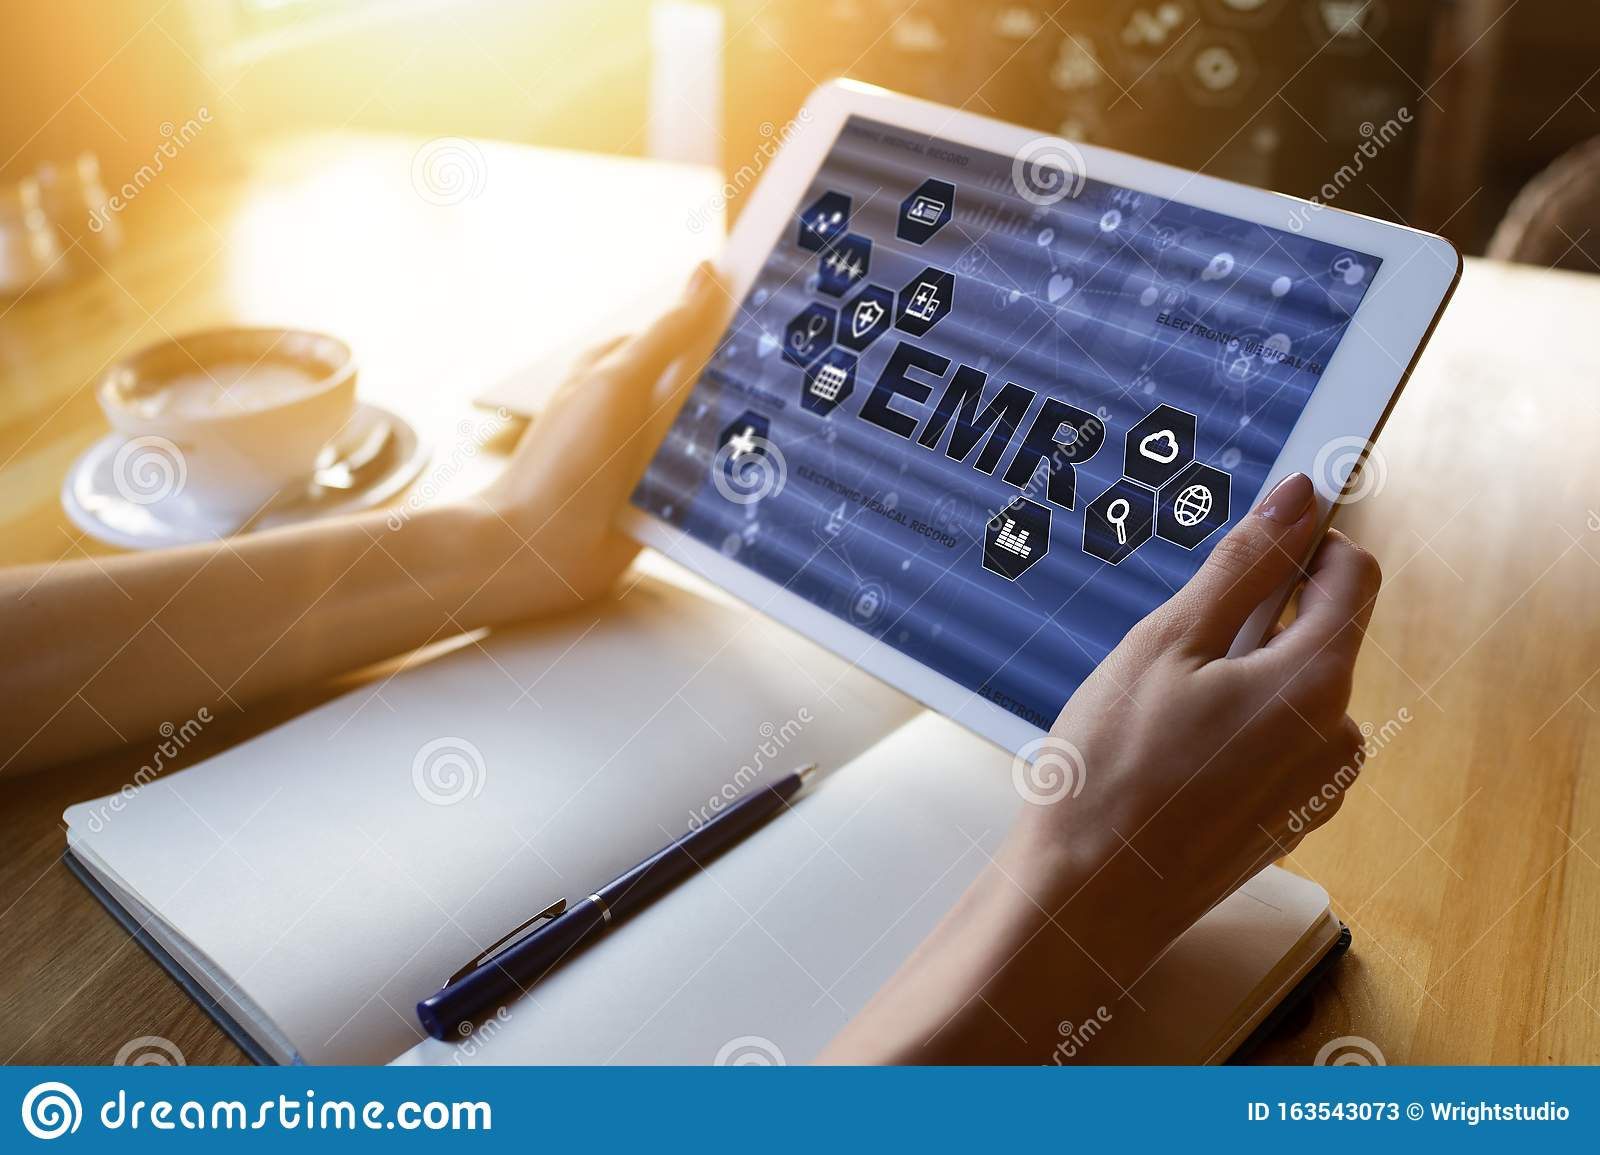 Personal Health Records Medlineplus